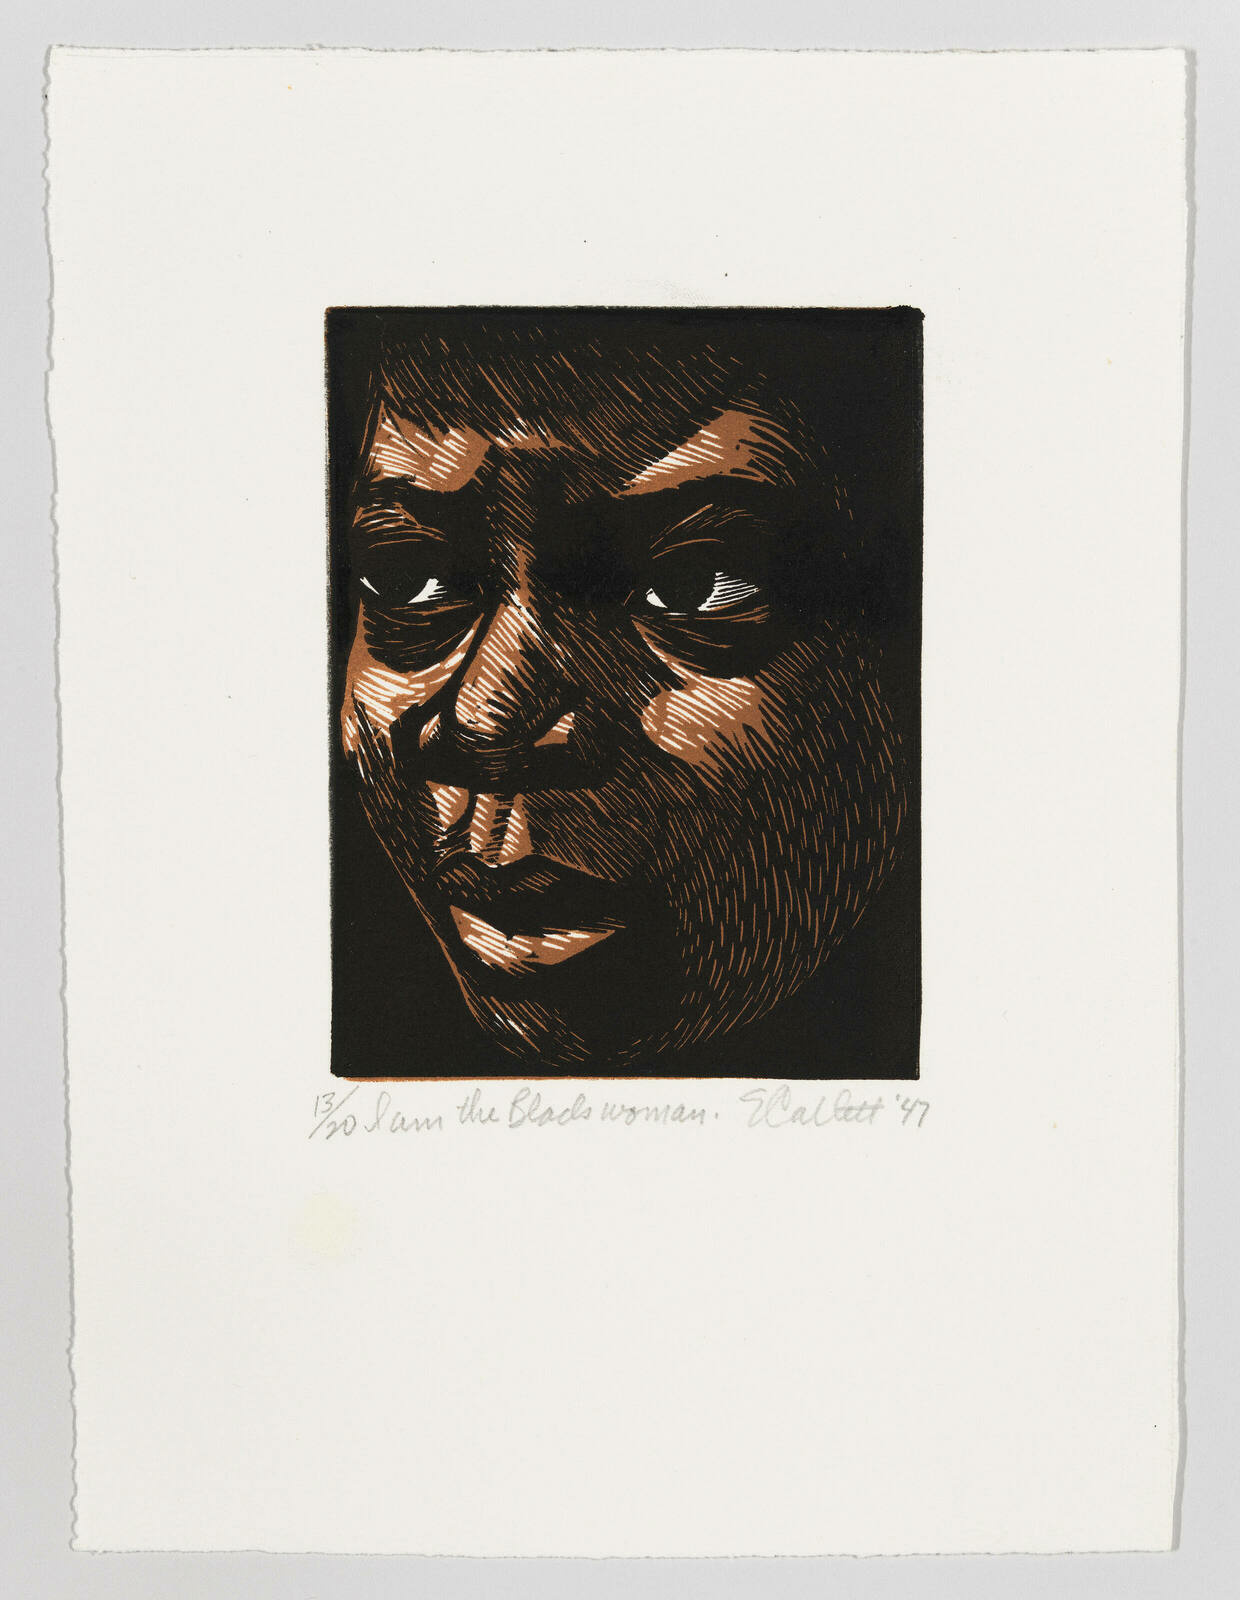 A close-up print of Black woman's face looking off to the side.